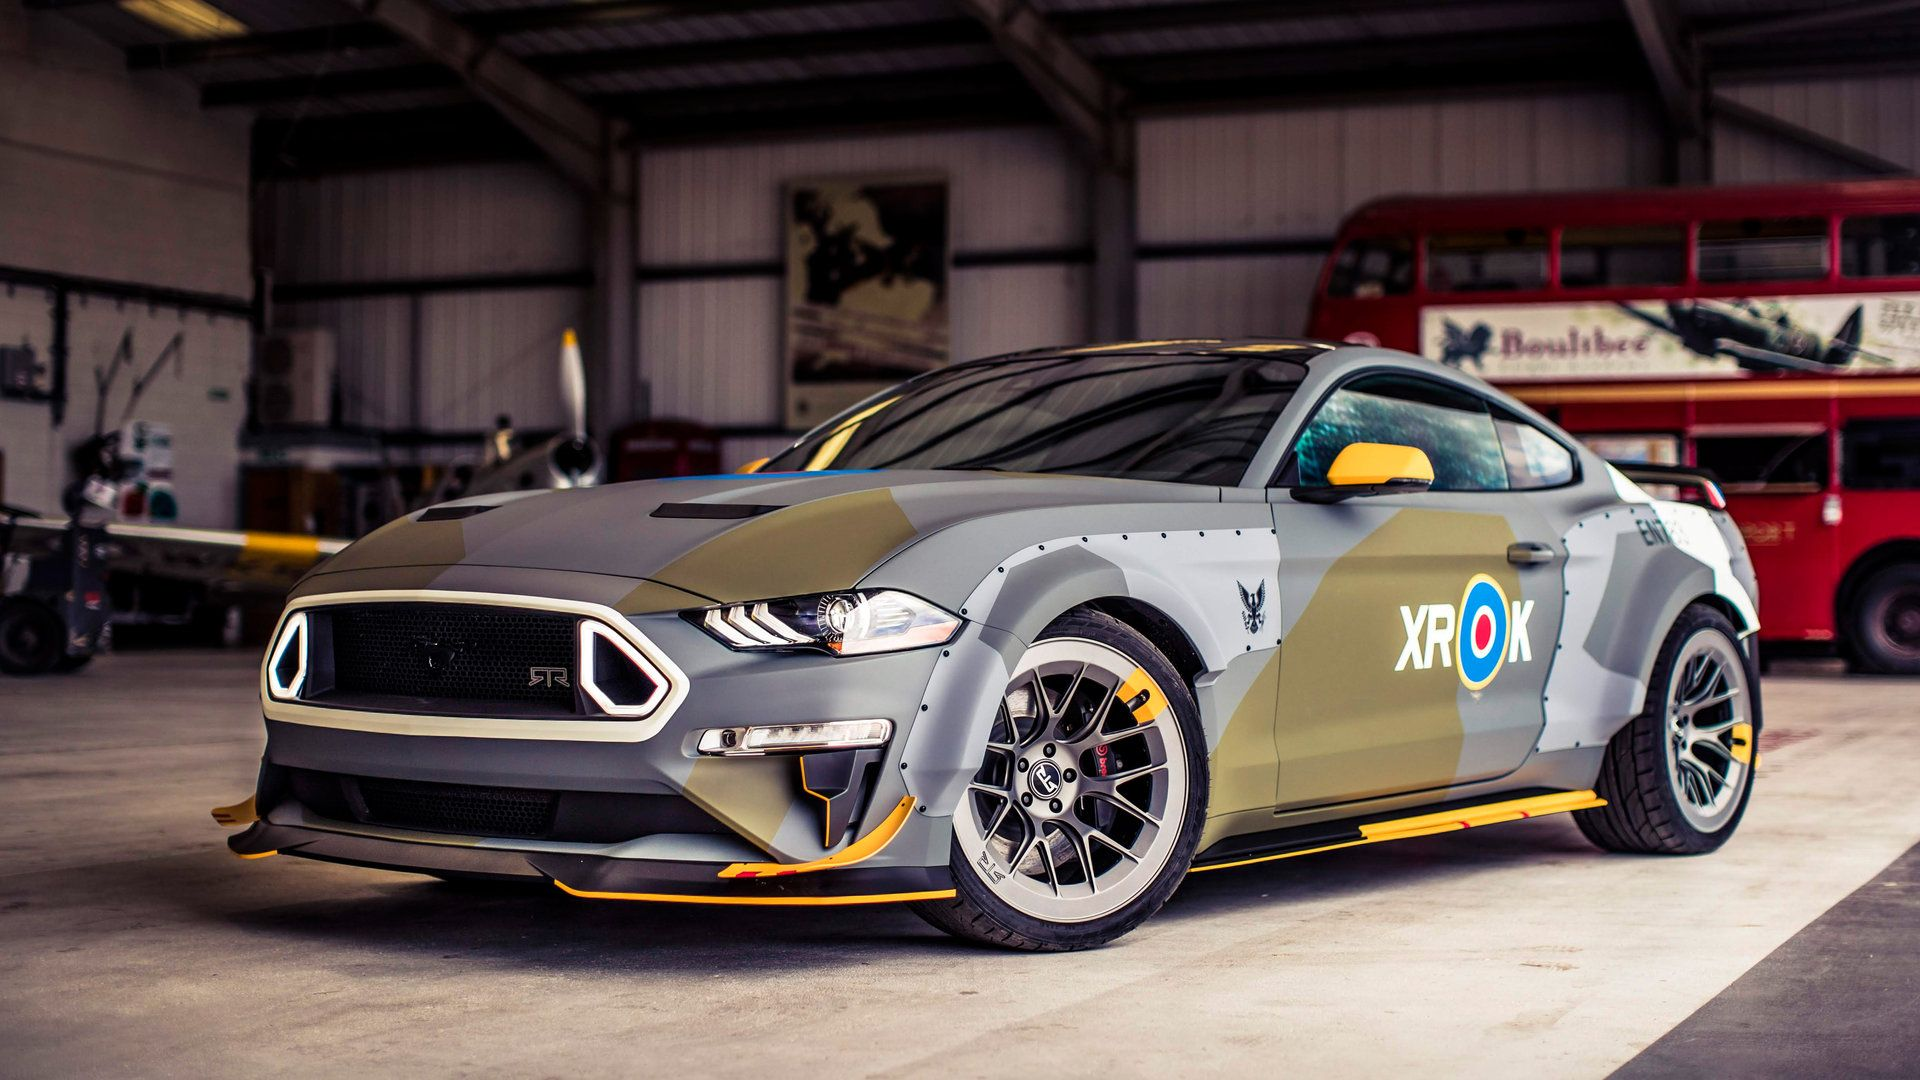 Ford Mustang Spitfire 1